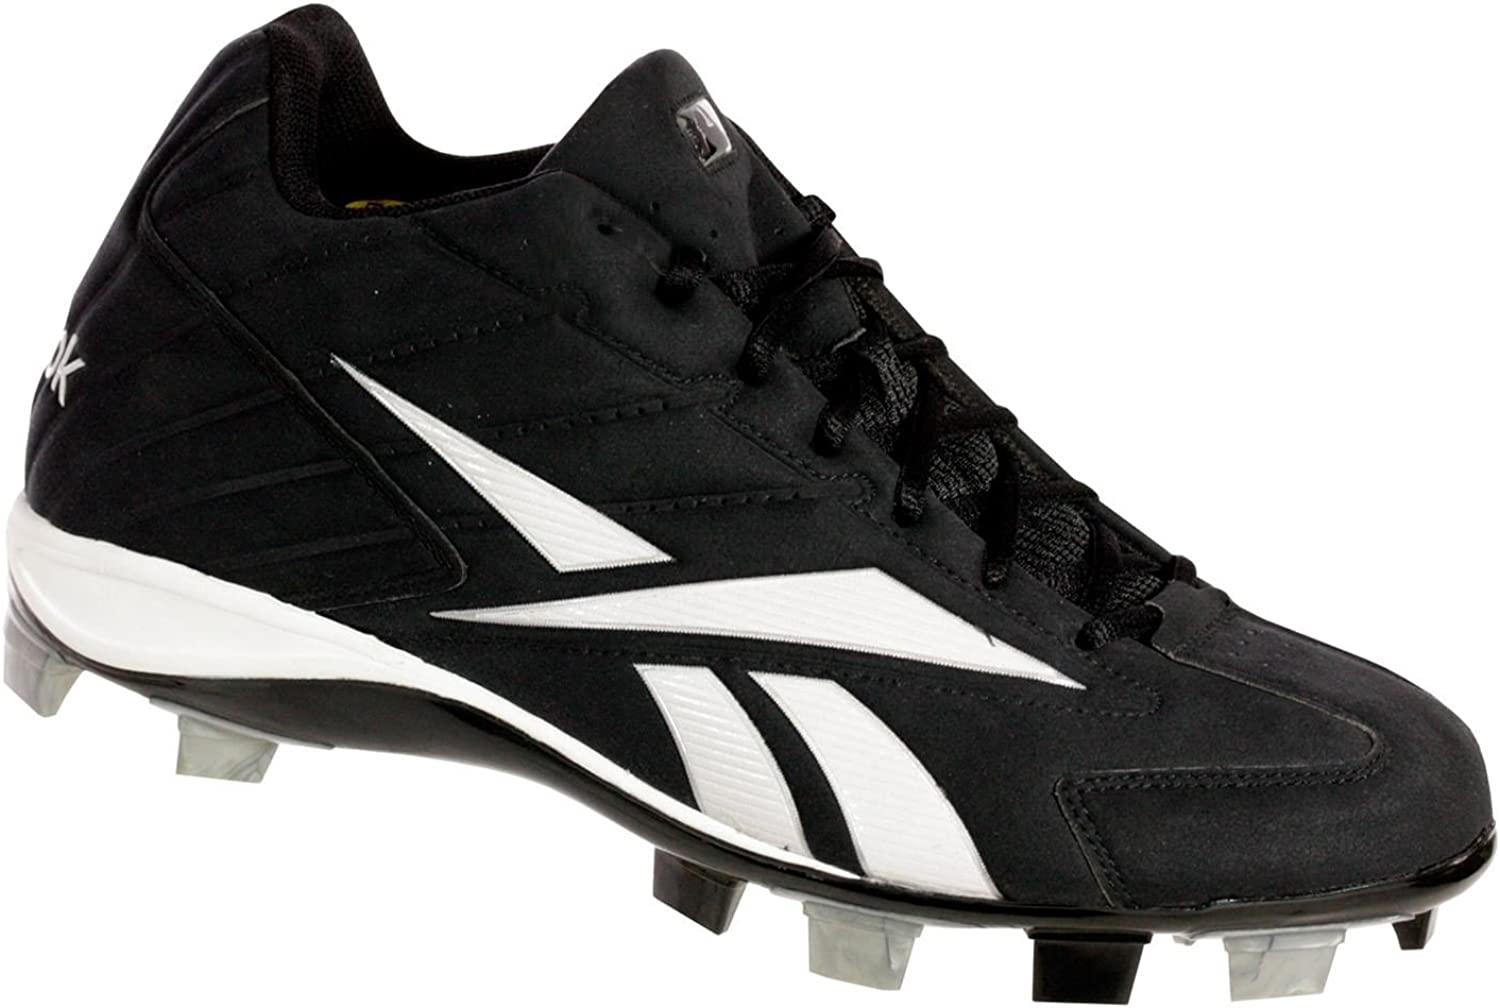 Reebok PRO HIGH N TIGHT II MID M Mens Baseball Cleats Black White 12.5 M